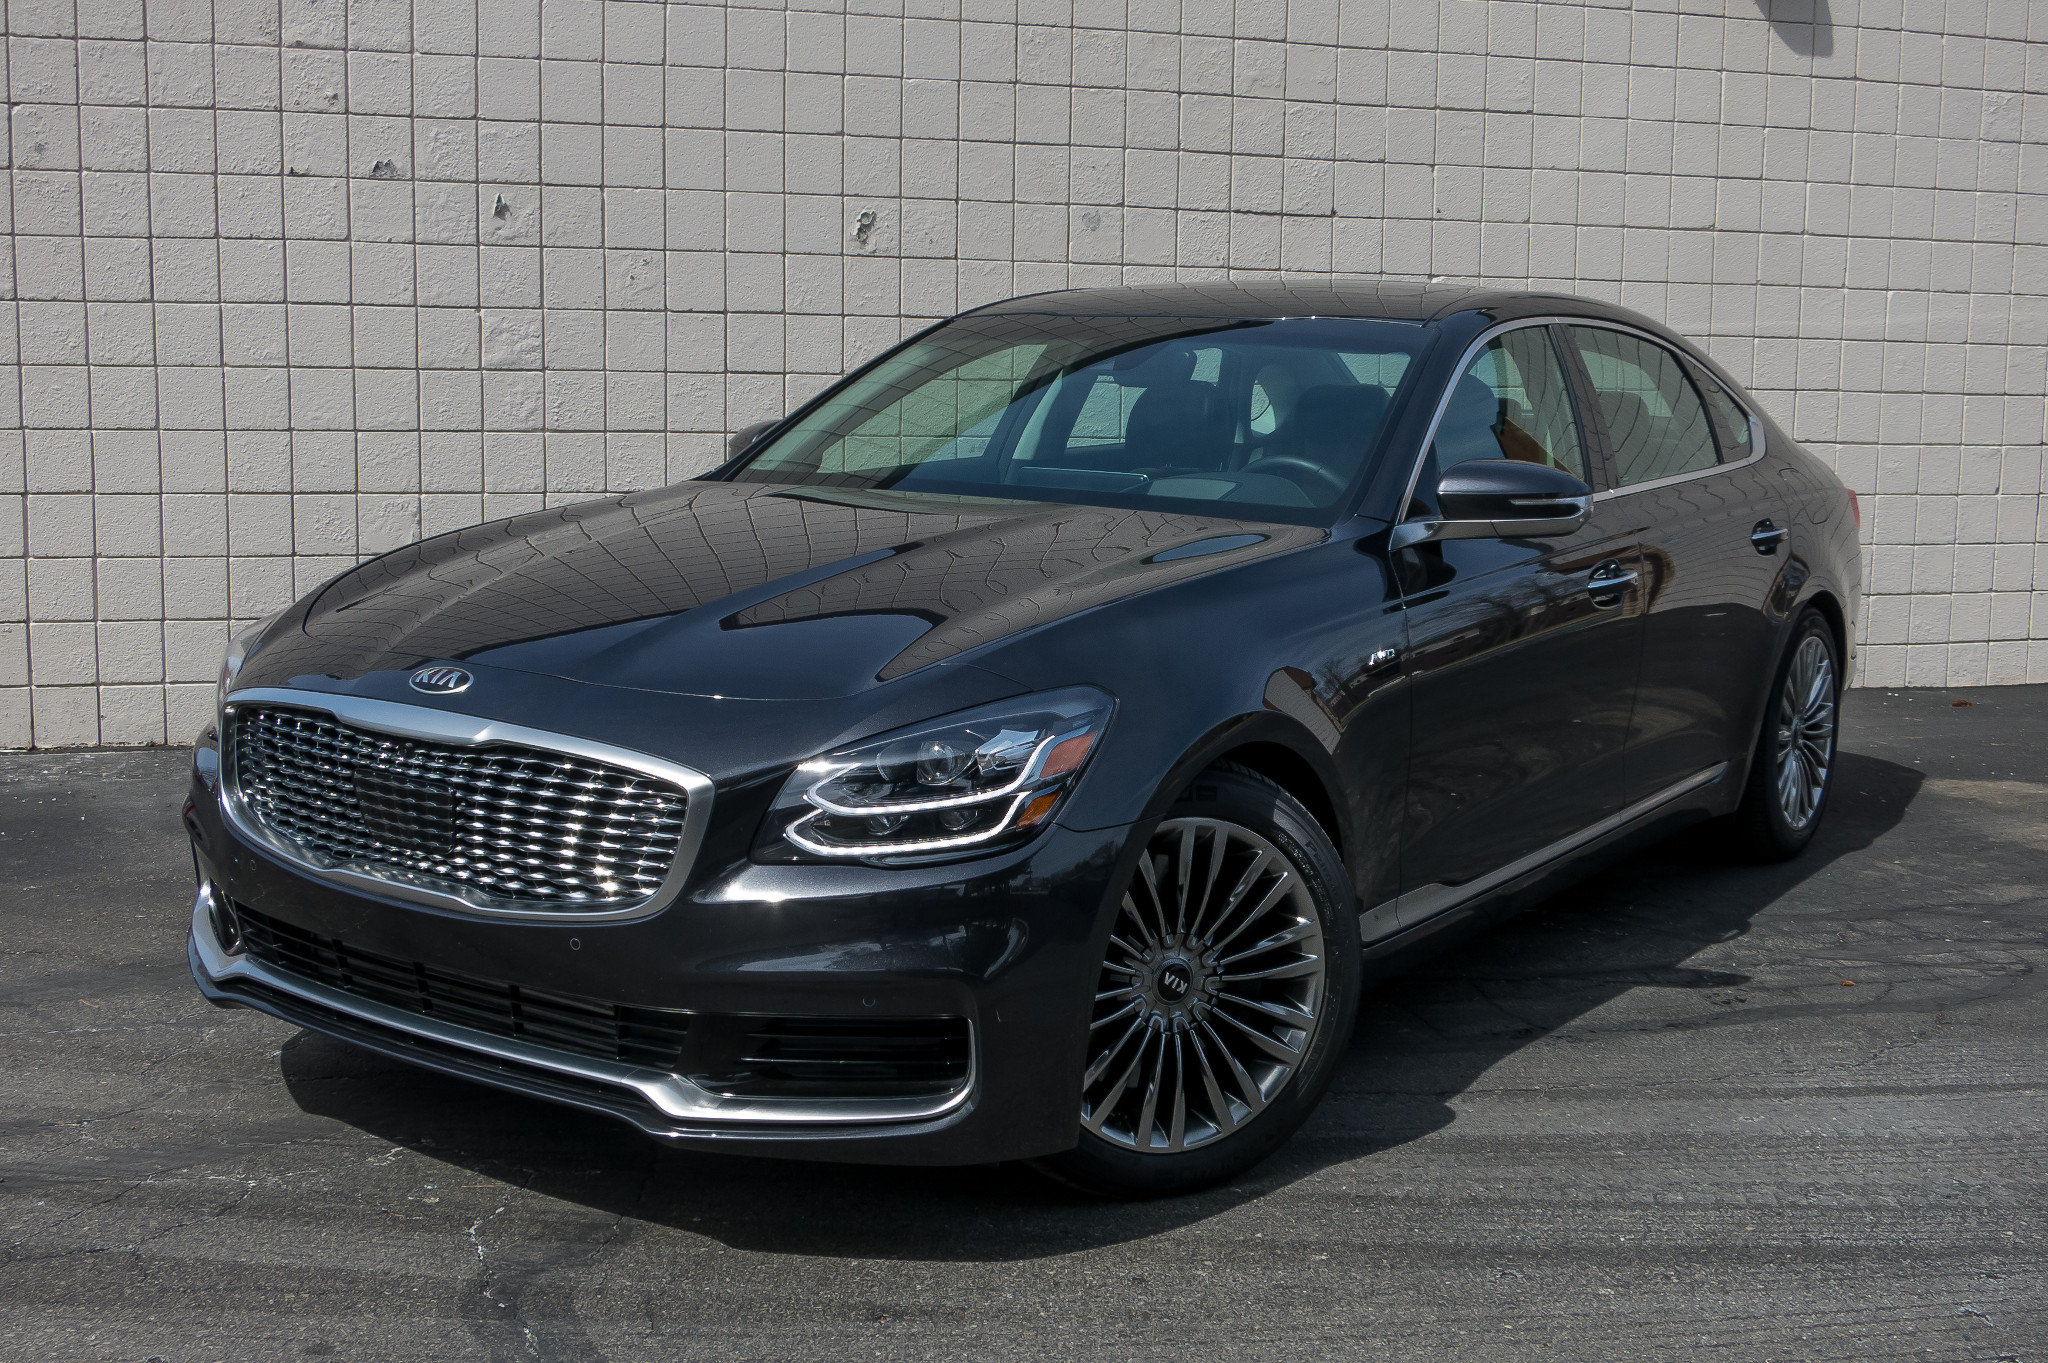 2019 Kia K900 Review: Still the Best Kirkland Brand Luxury Sedan